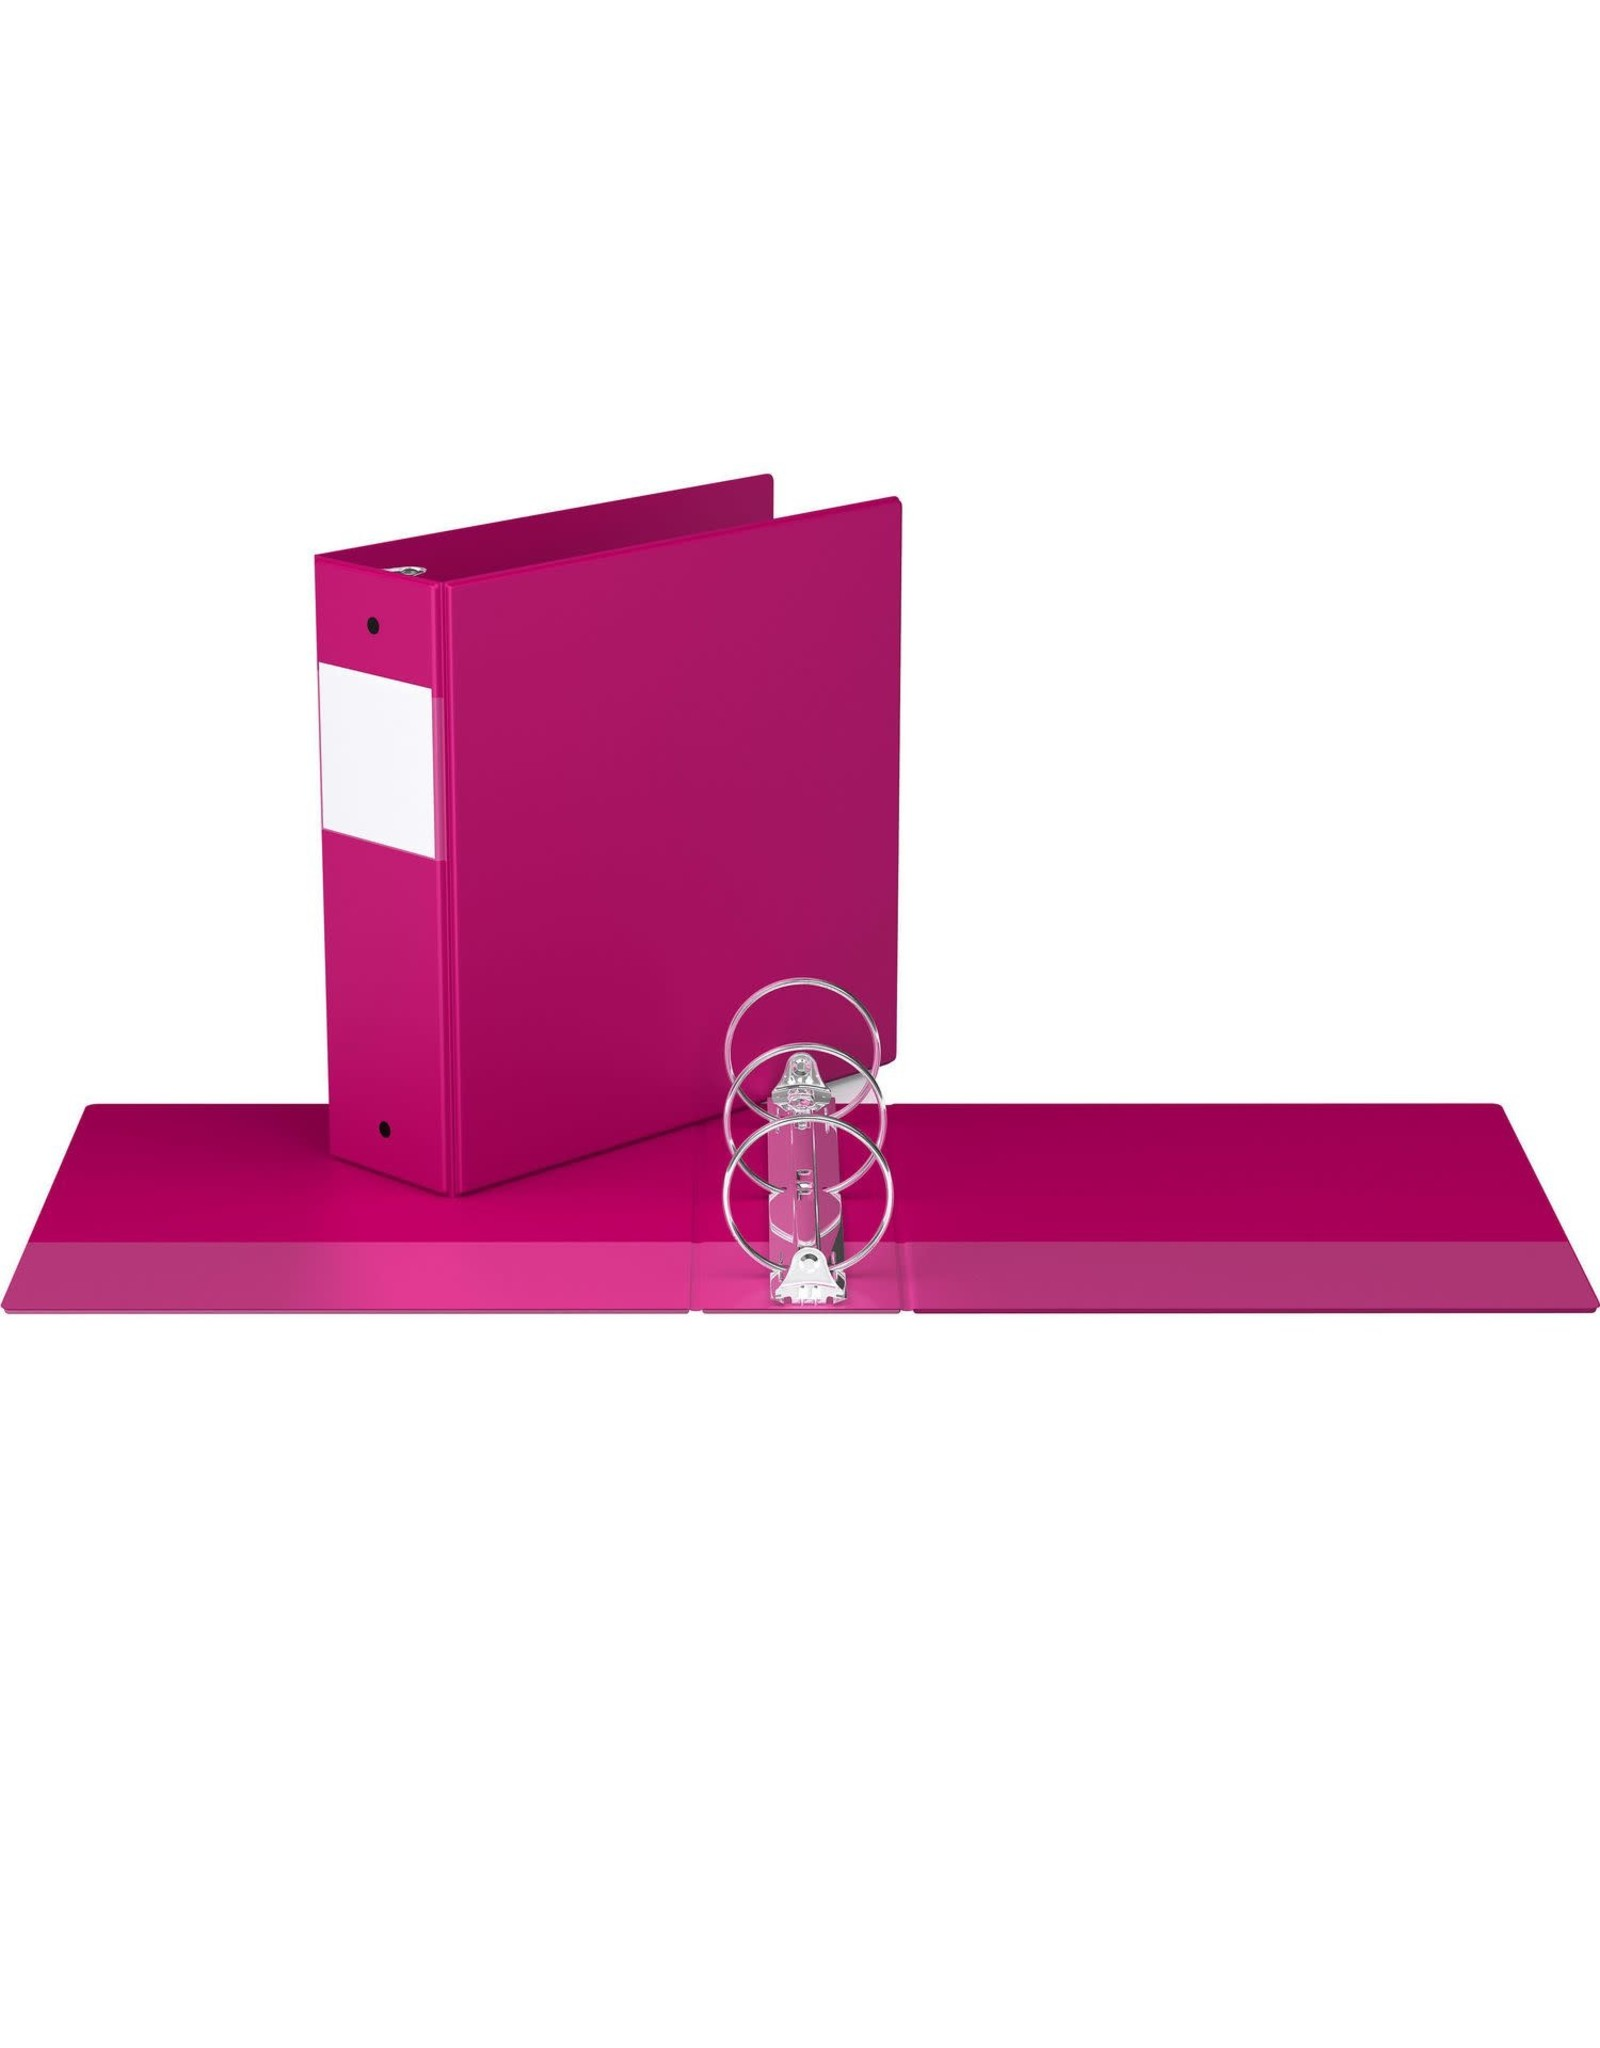 "Davis Group BINDER-ESSENTIAL 2300 3"" ROUND RING, PINK"